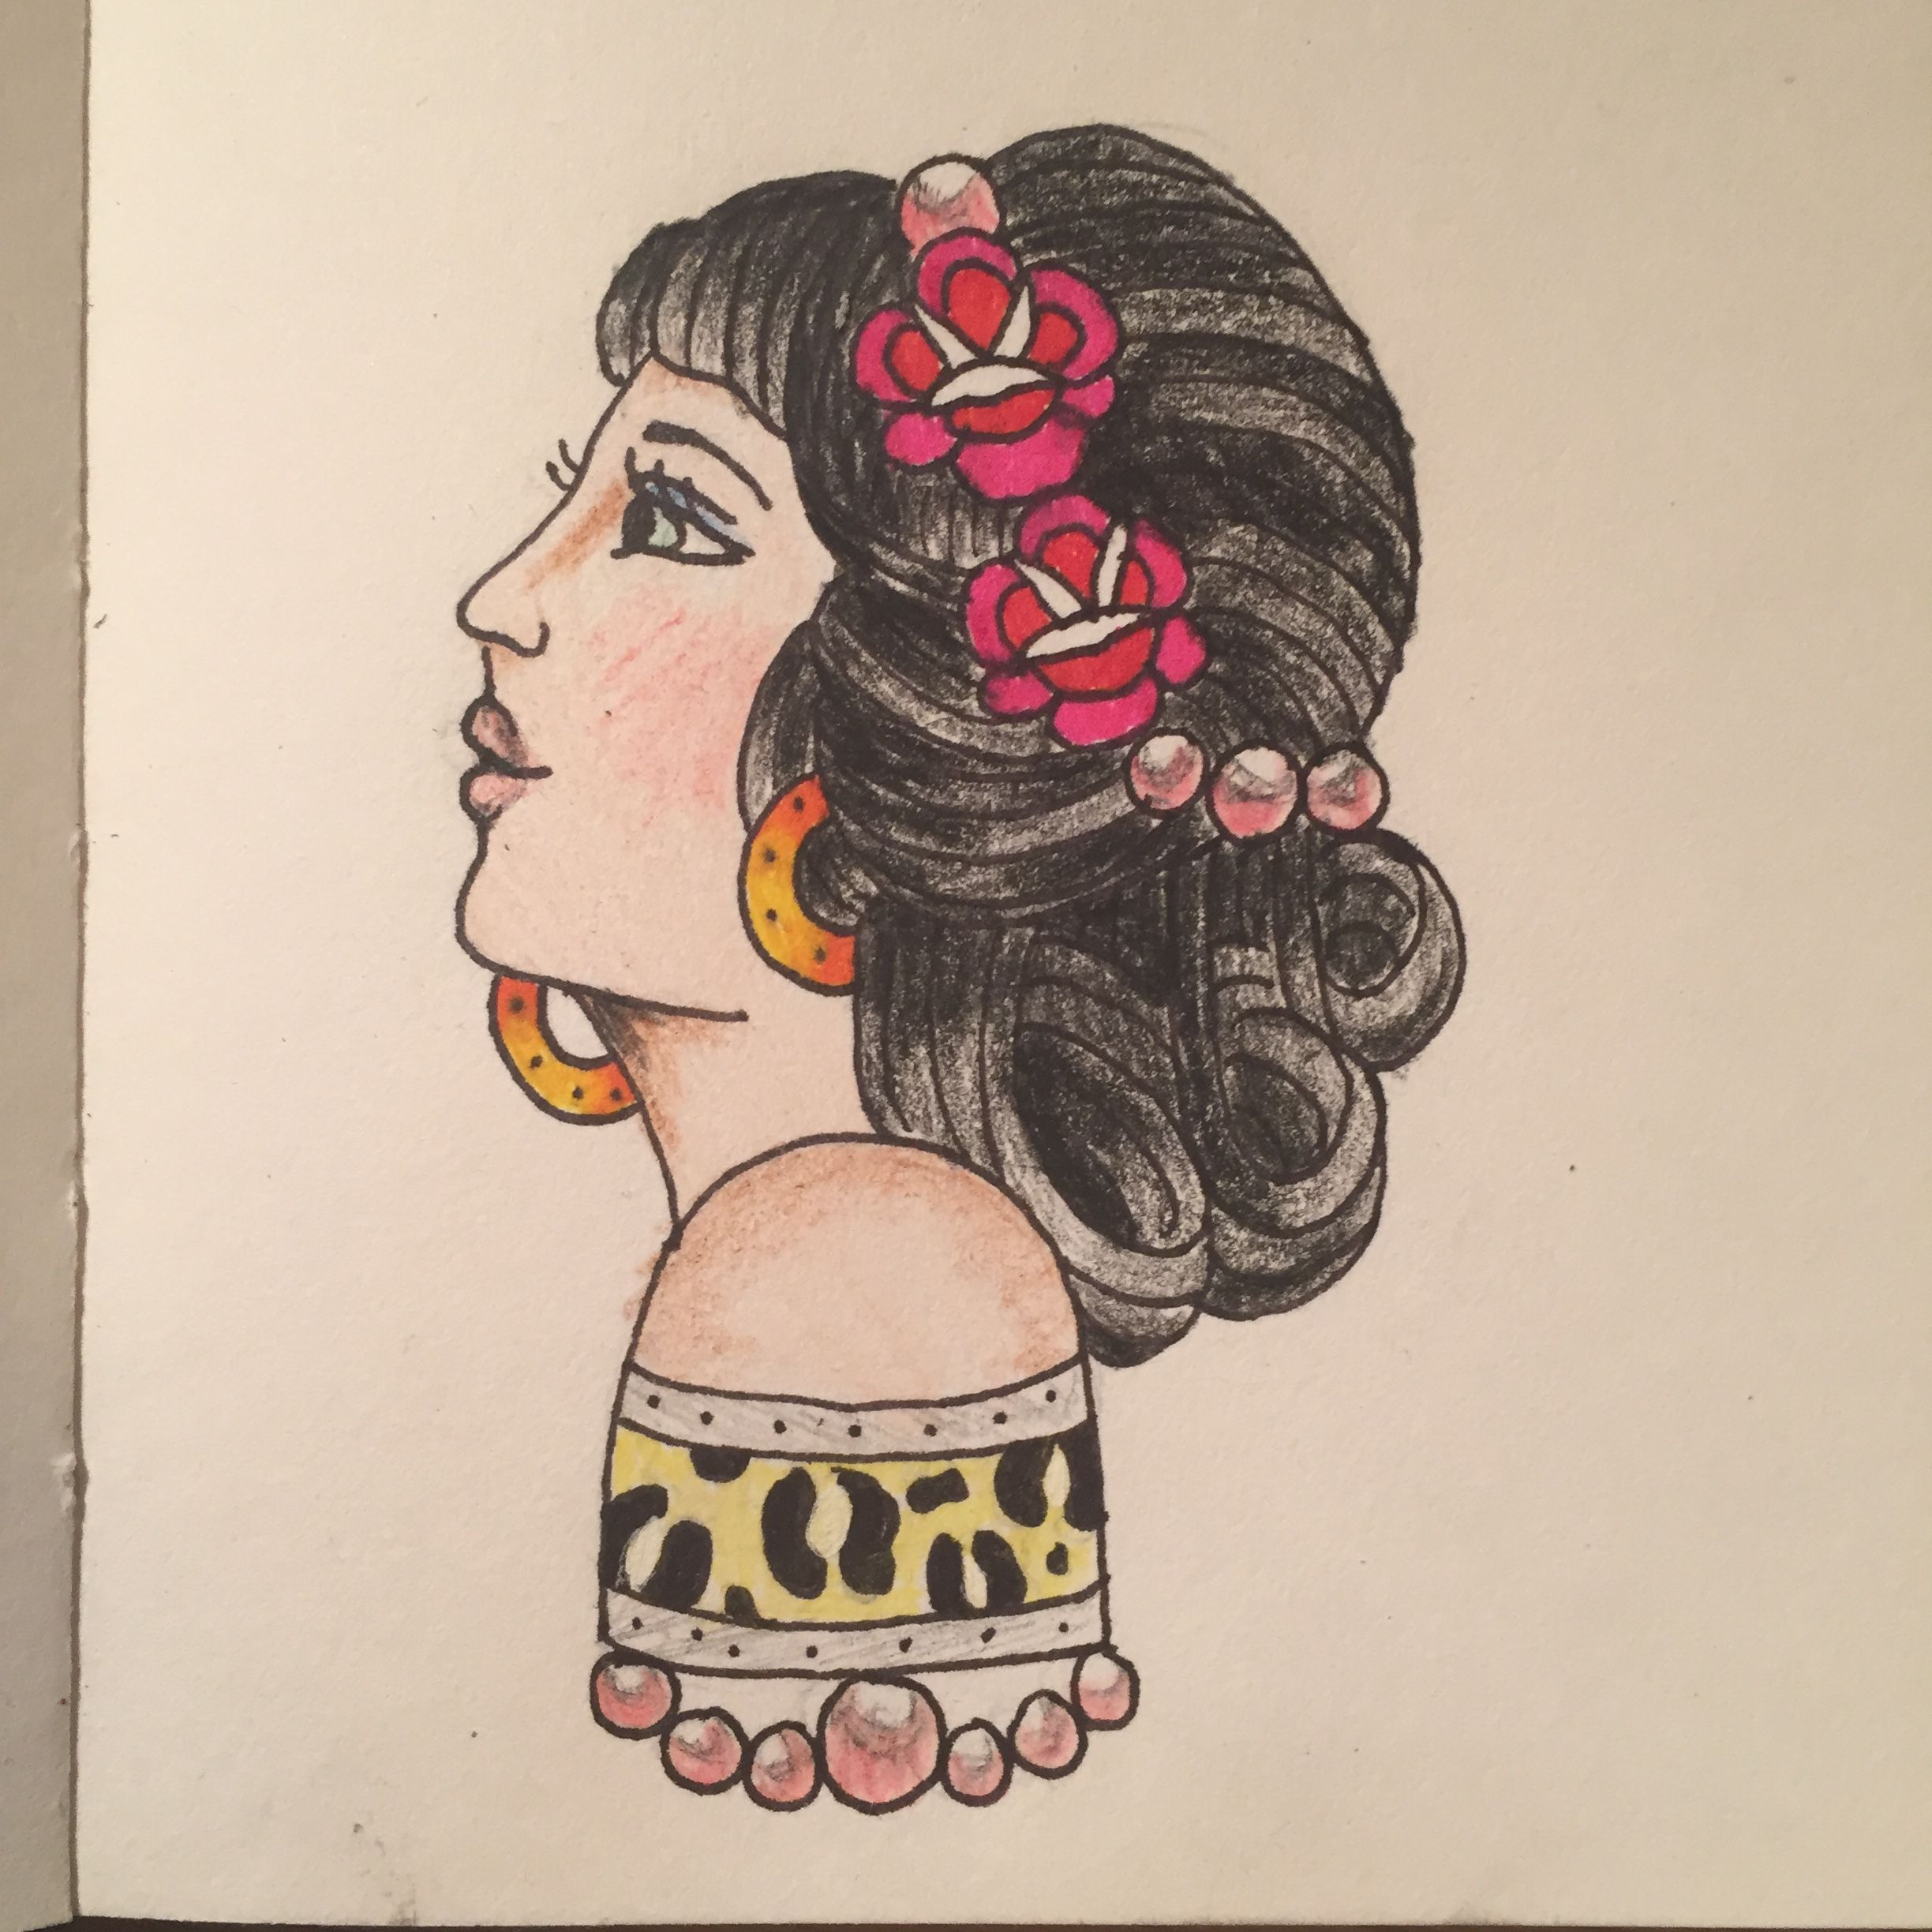 American traditional tattoo drawing of a gypsy lady